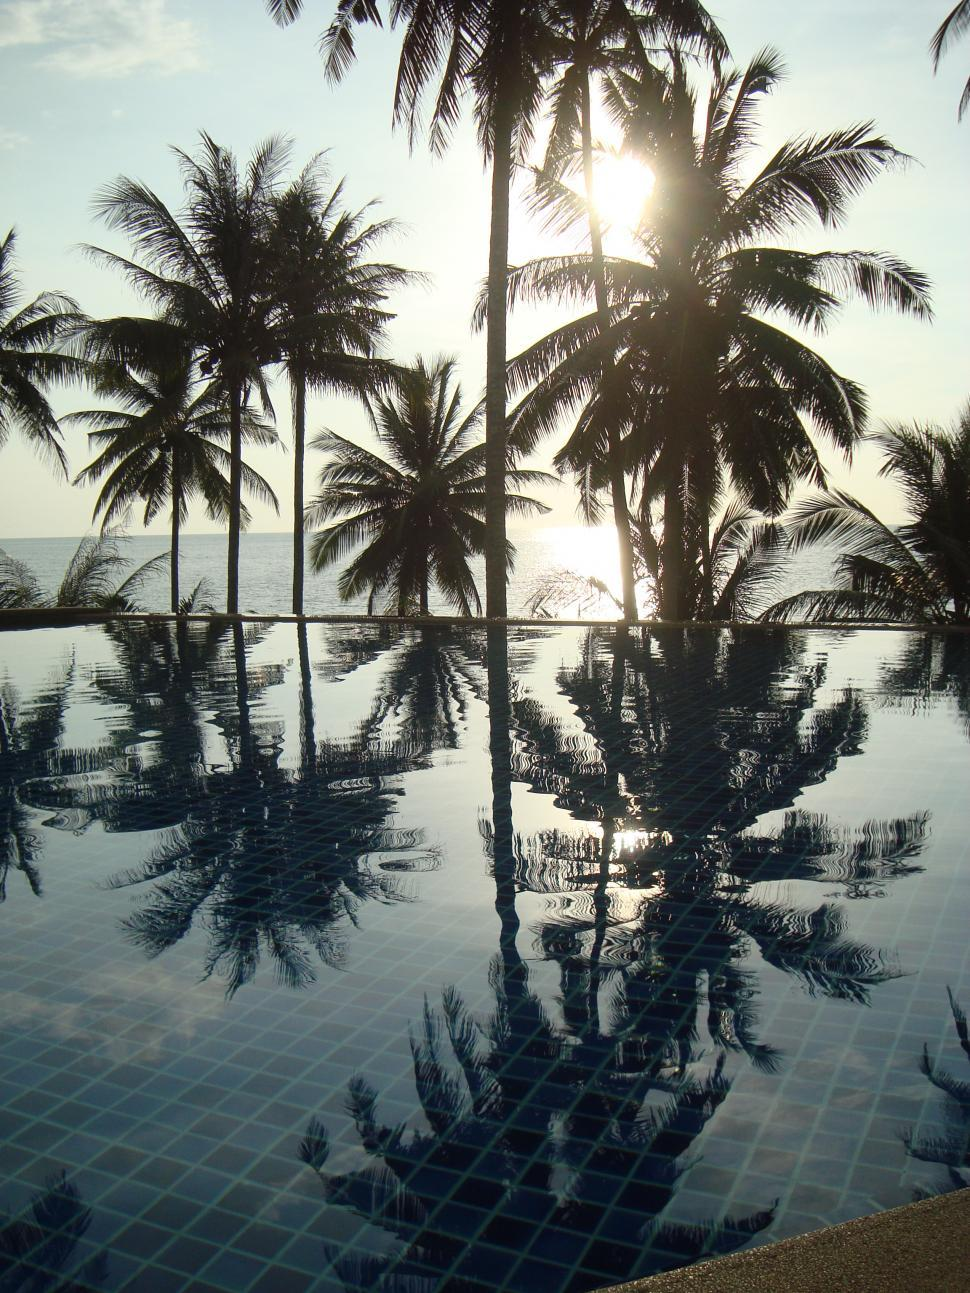 Download Free Stock HD Photo of Tropical Ocean View Swimming Pool Online